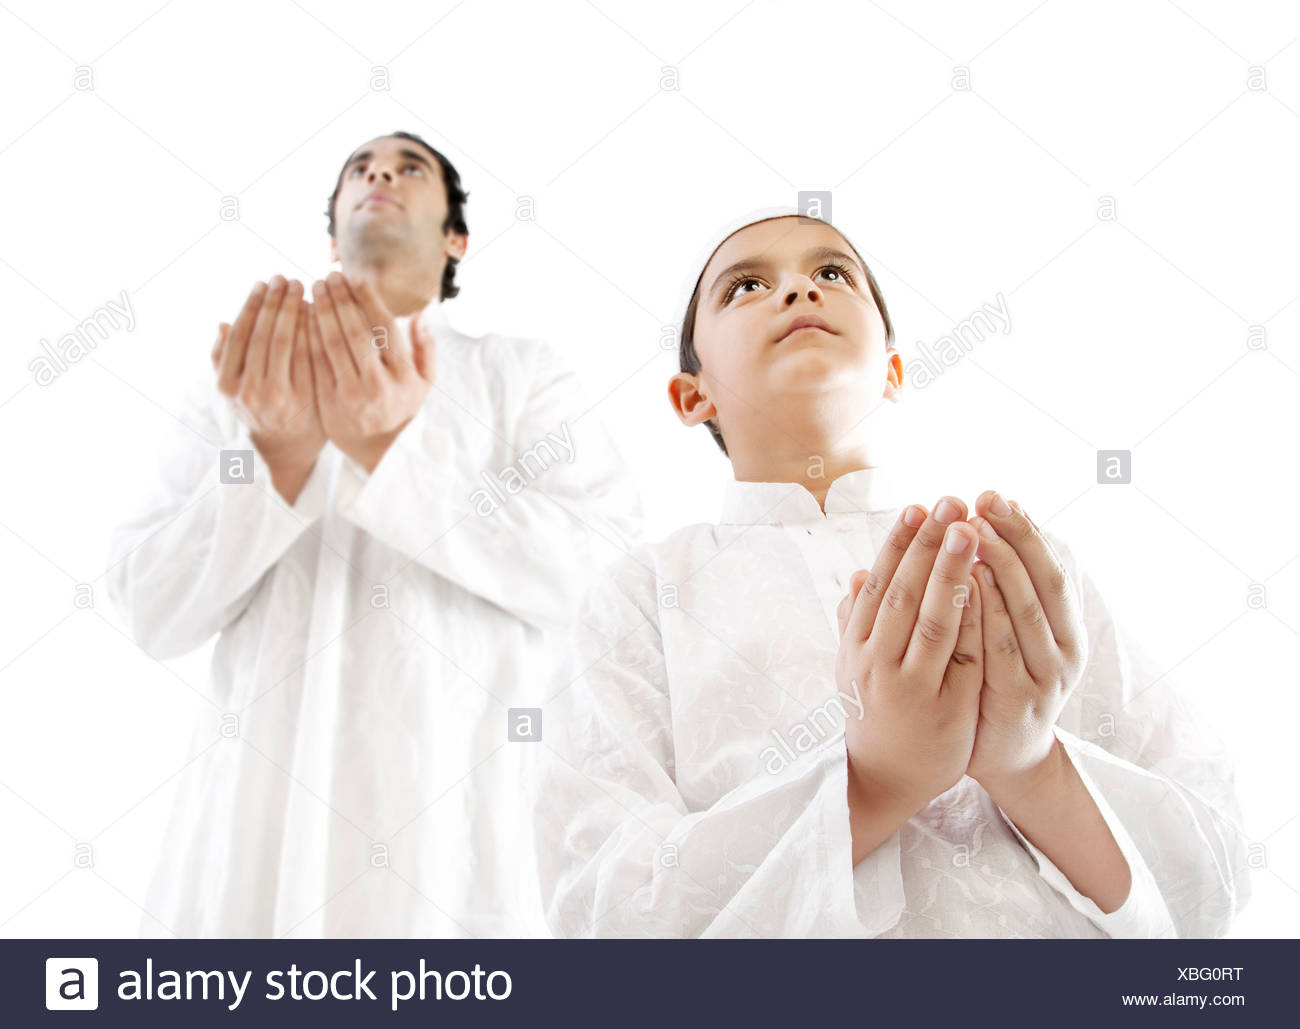 Muslim Father And Son Prayer Stock Photos Amp Muslim Father